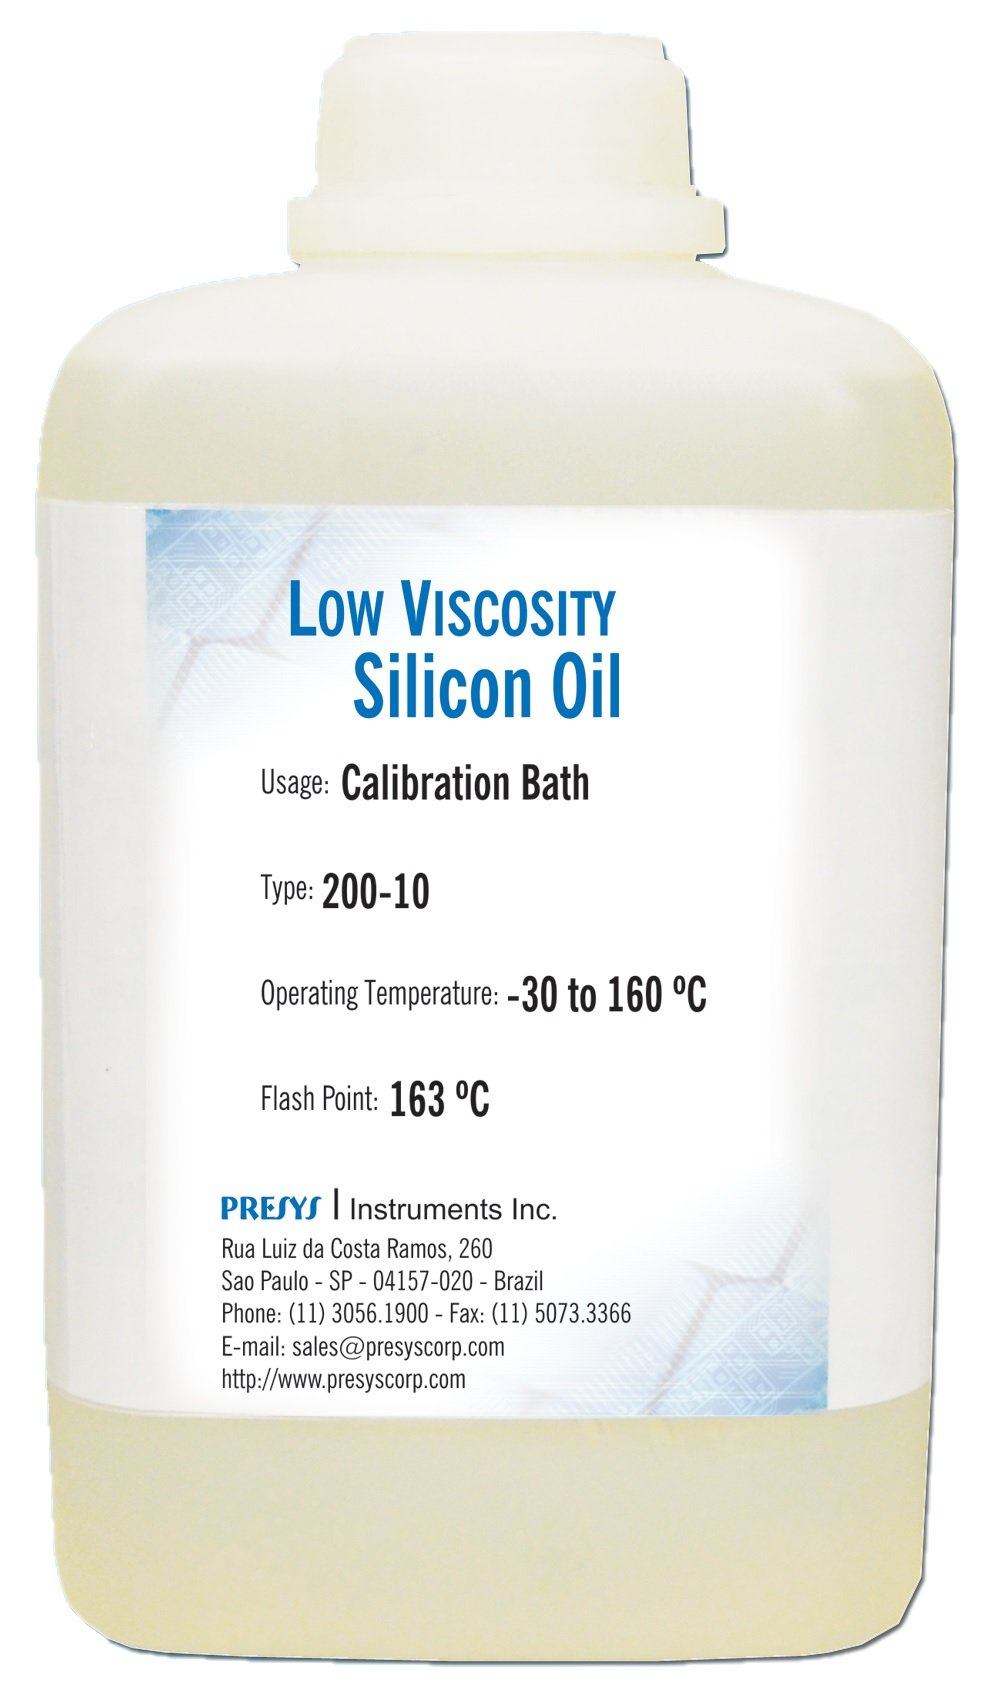 Photo: Силіконове масло Low Viscosity Silicon Oil 200-10